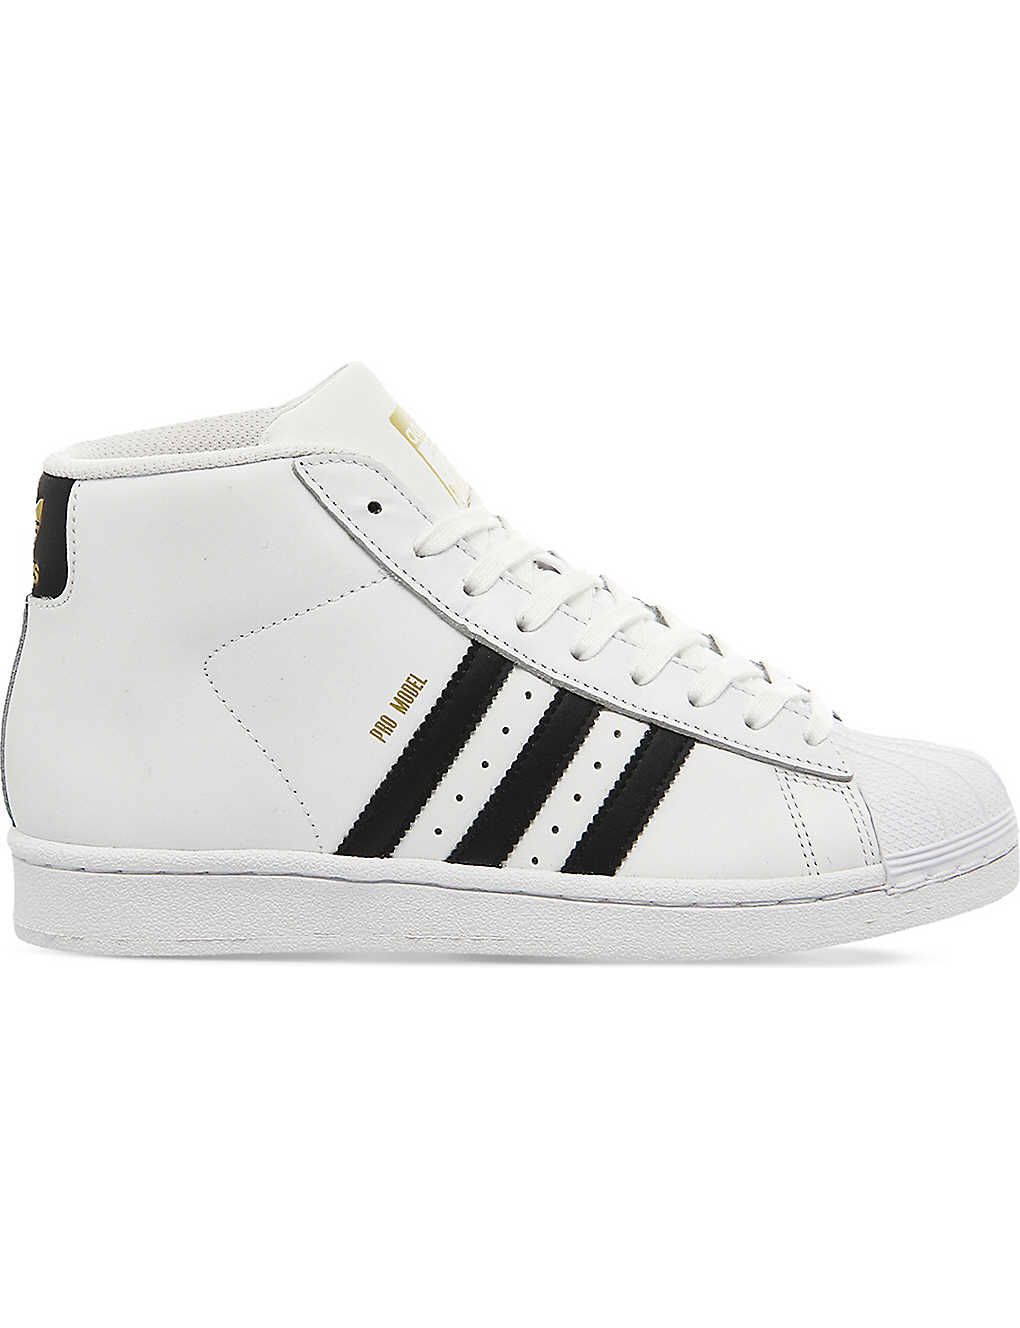 ADIDAS: Pro model leather high-top trainers